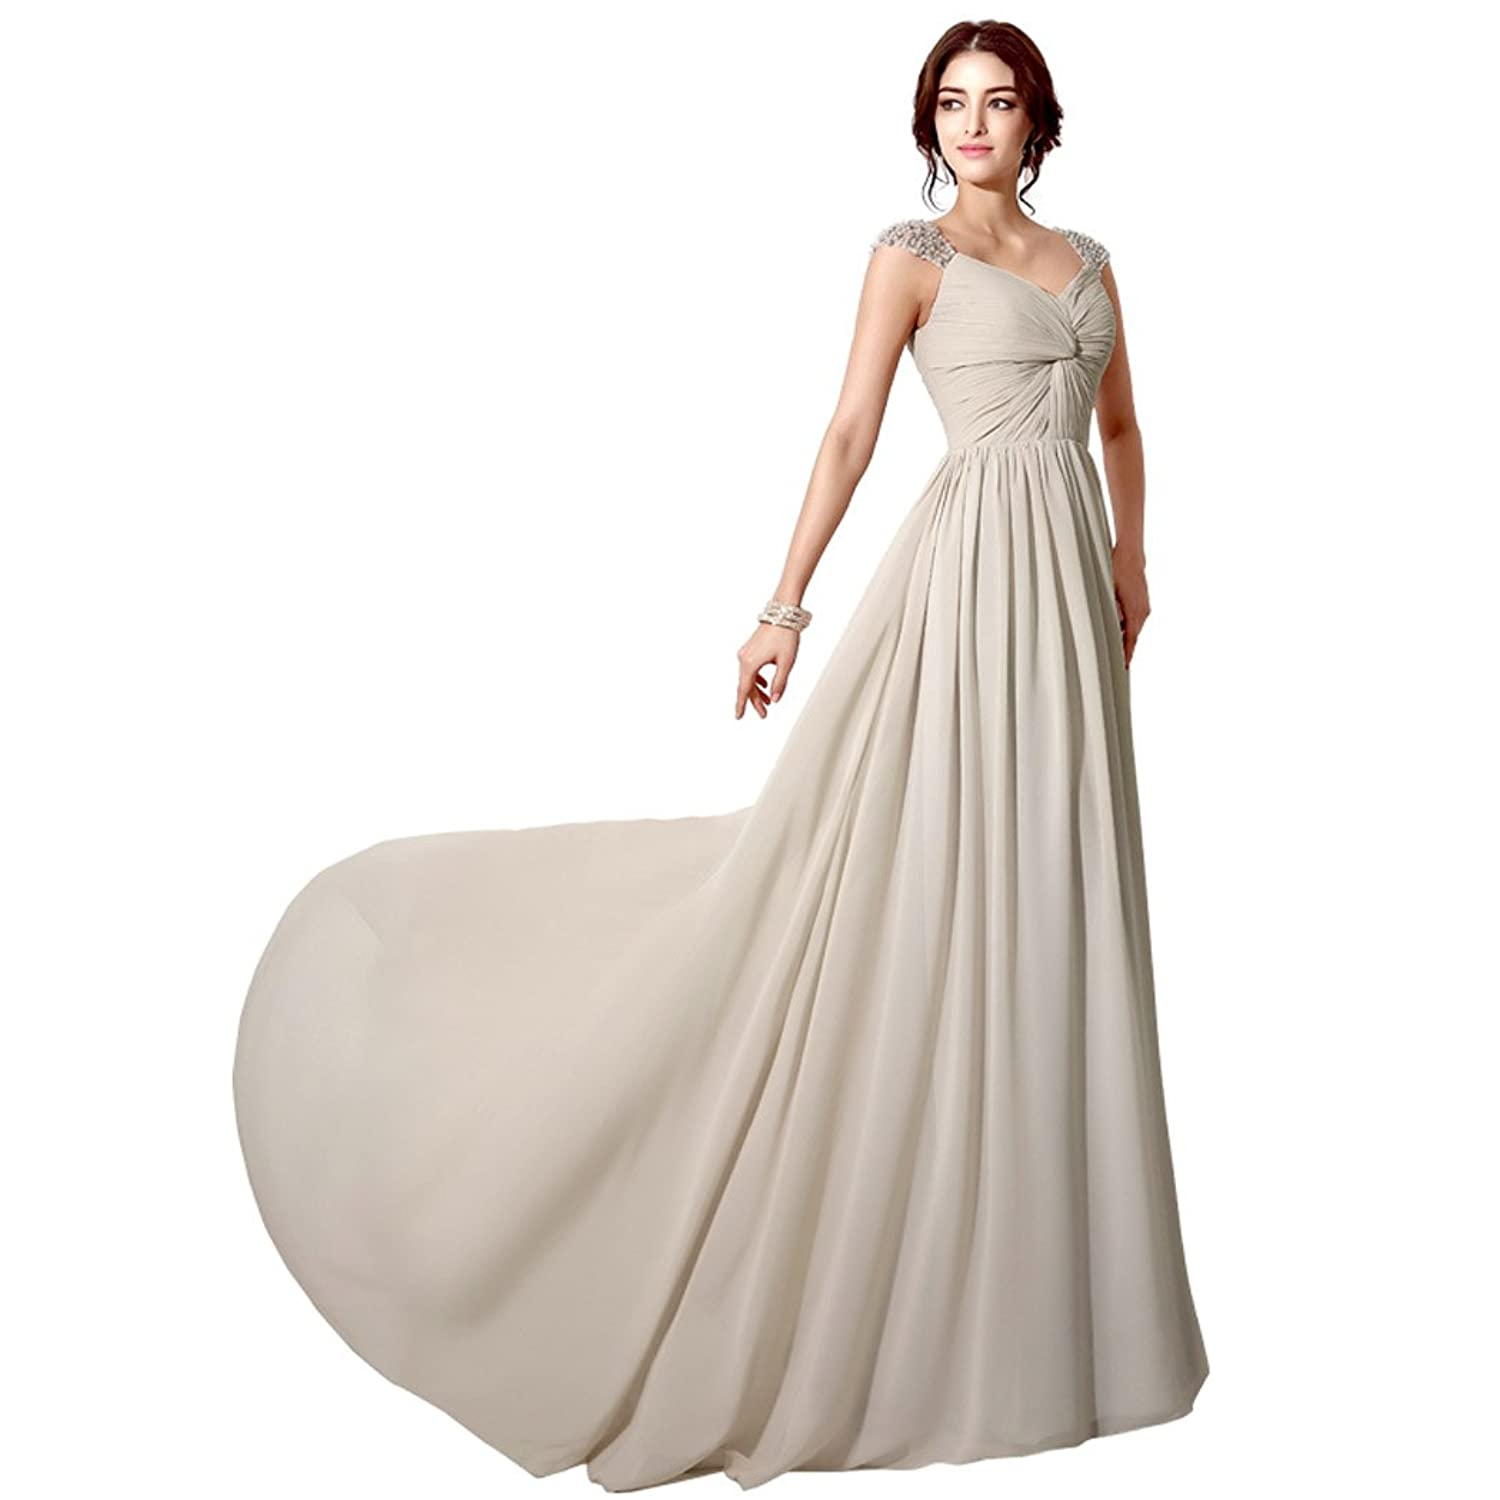 Sarahbridal Women's Chiffon Long Formal Evening Bridesmaid Dresses Sequined Party Gowns with Pearls SSD202